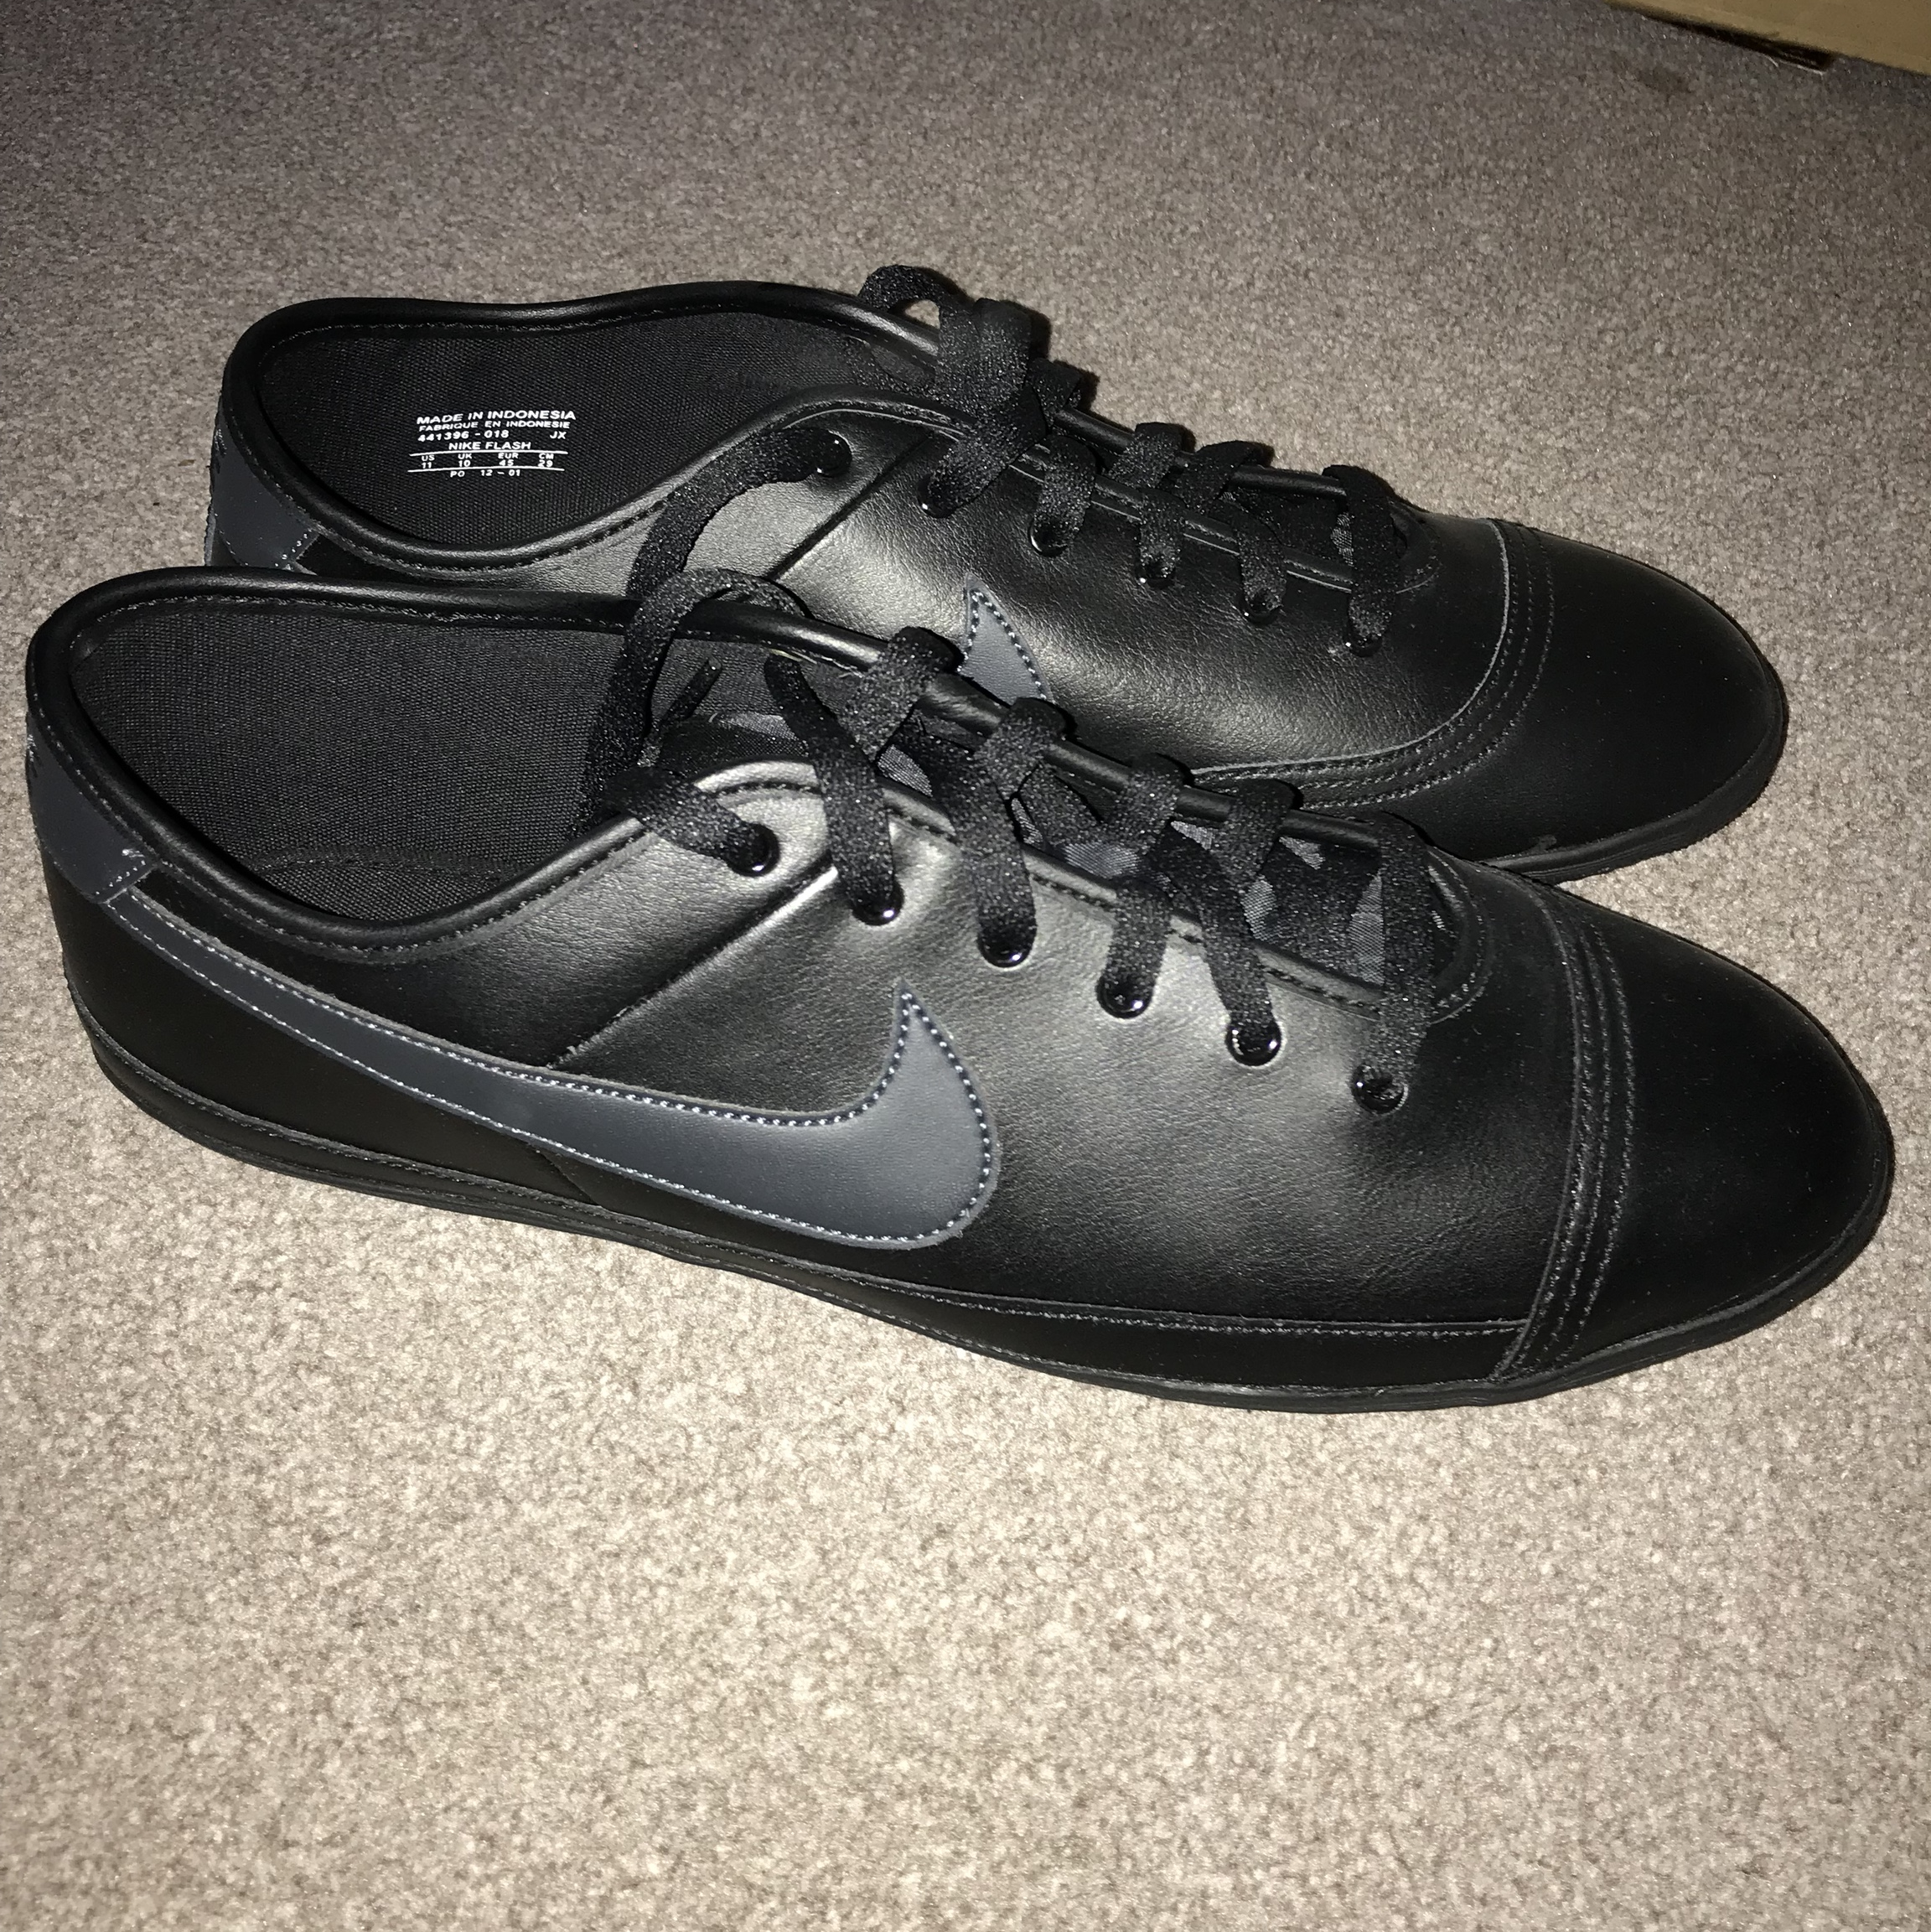 Miseria Robar a Viva  Nike Flash leather trainers black. Never worn so... - Depop